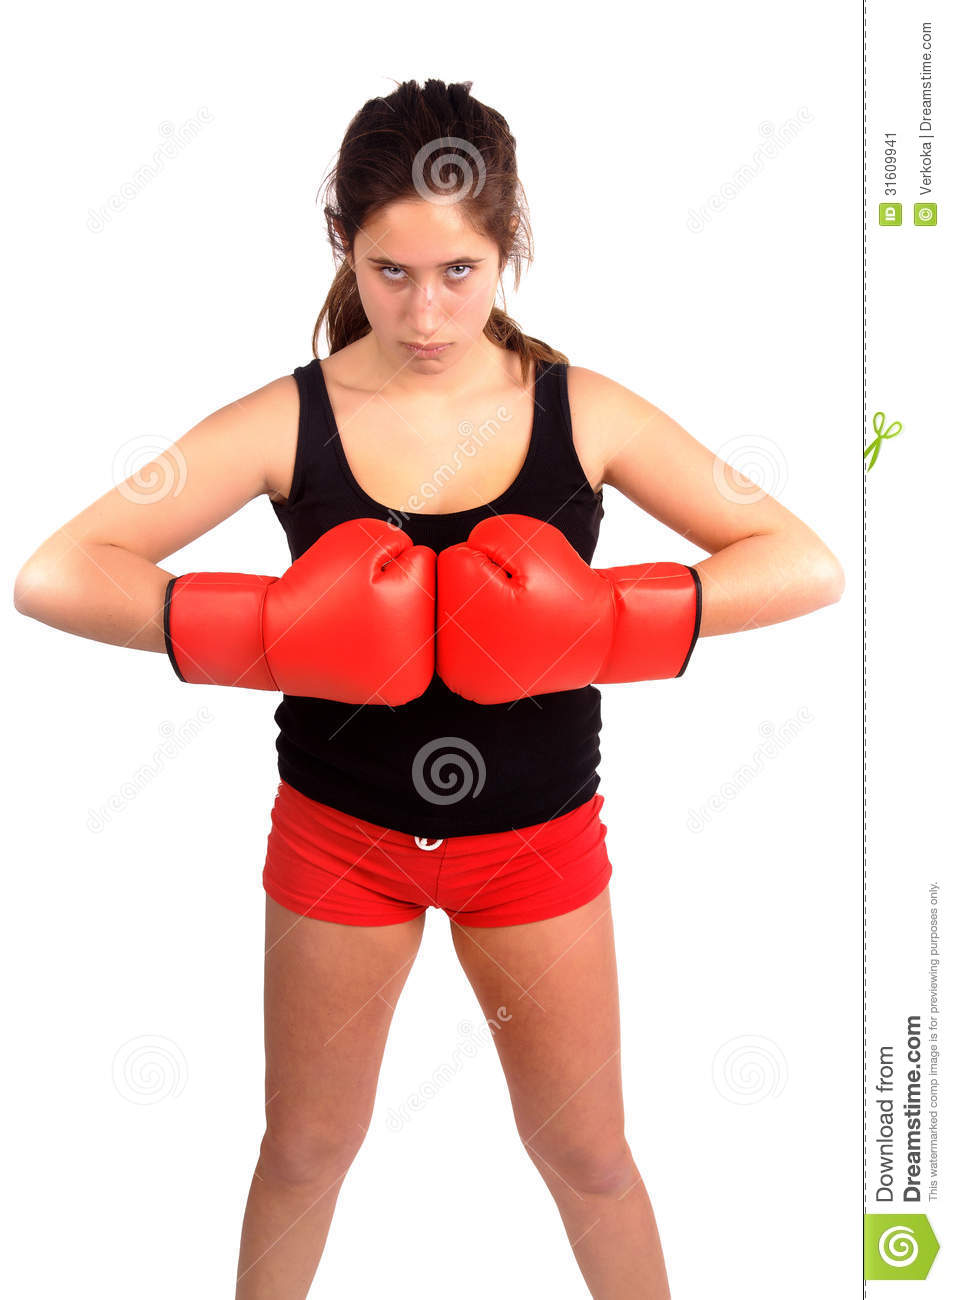 Find great deals on eBay for girls boxers. Shop with confidence.